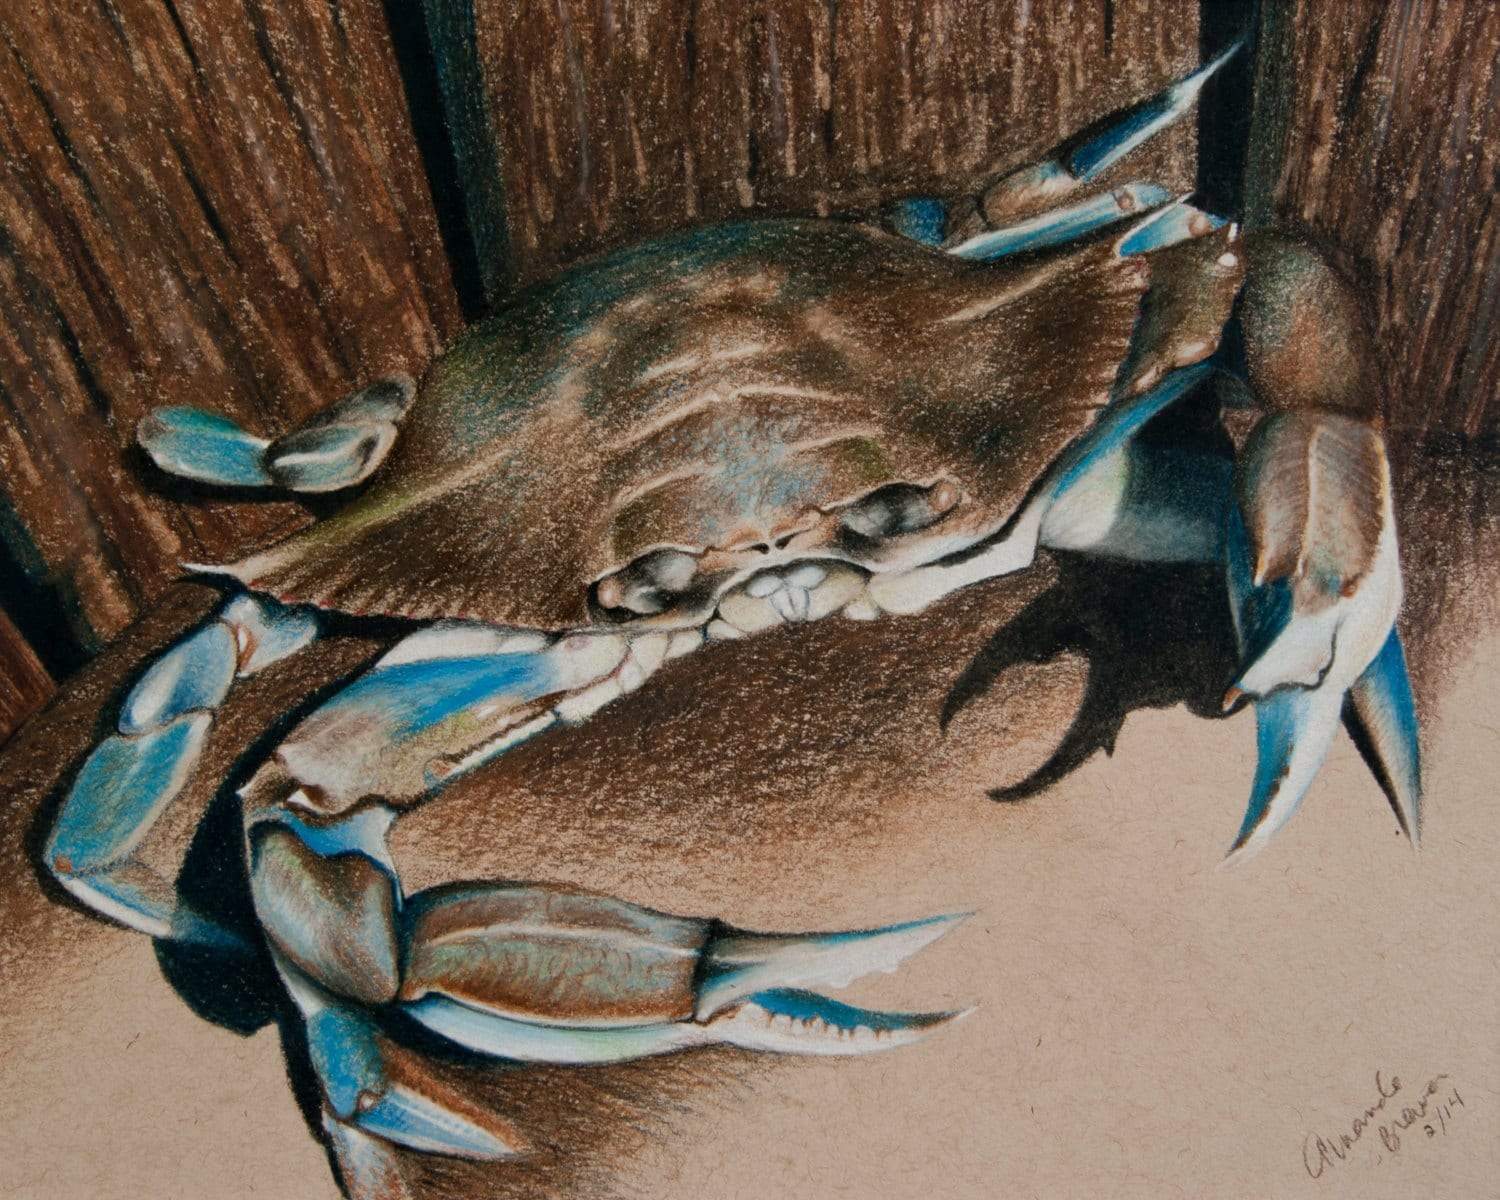 It's just an image of Agile Blue Crab Drawing